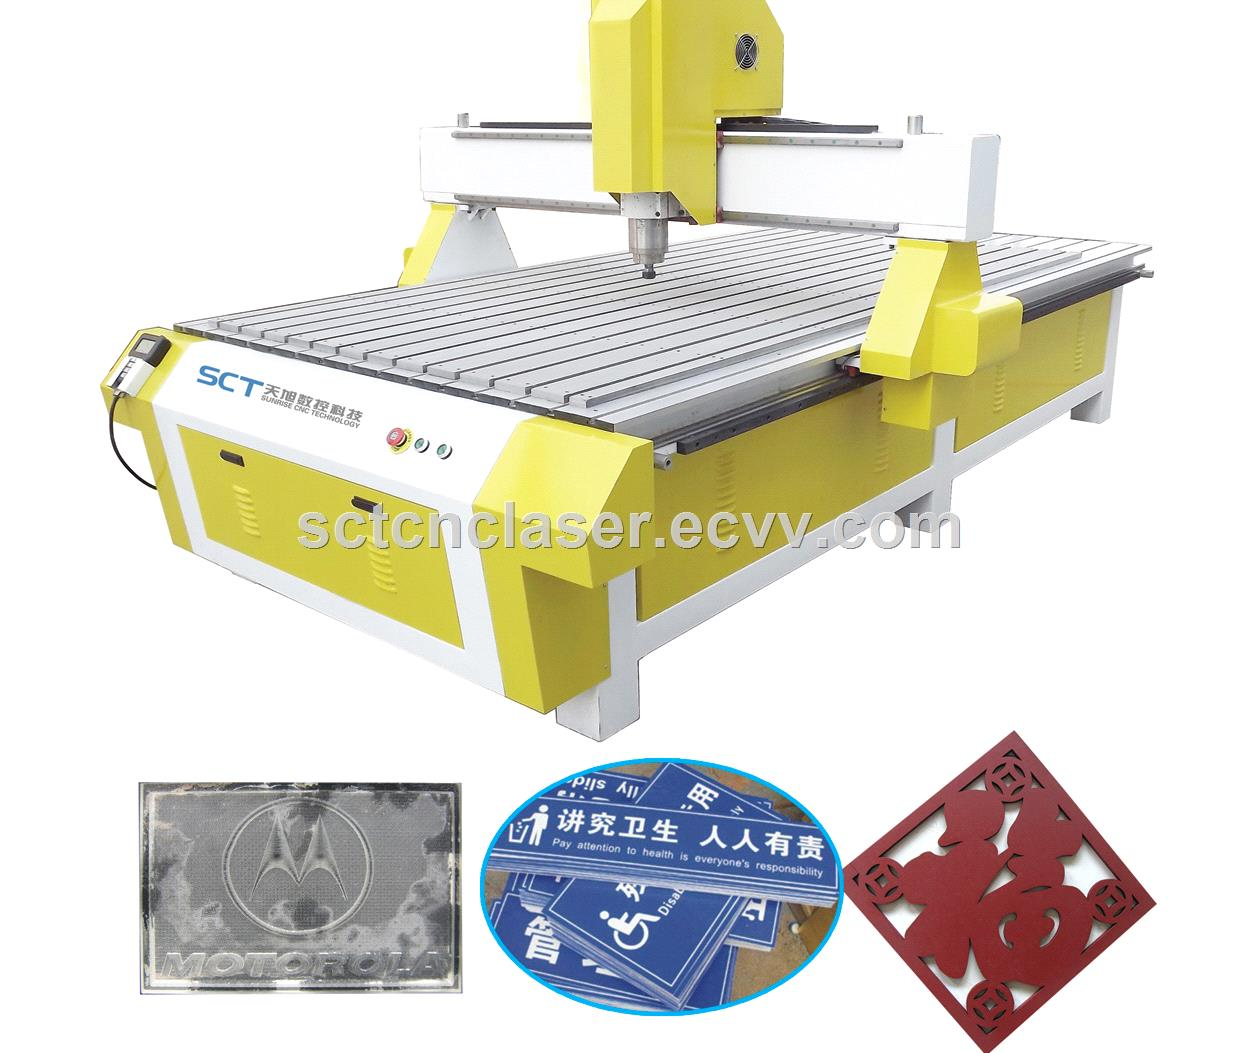 SCT-B1224 Copper Aluminnum Wood MDF High Precision Engraving CNC Router for  Advertising Wood Furniture